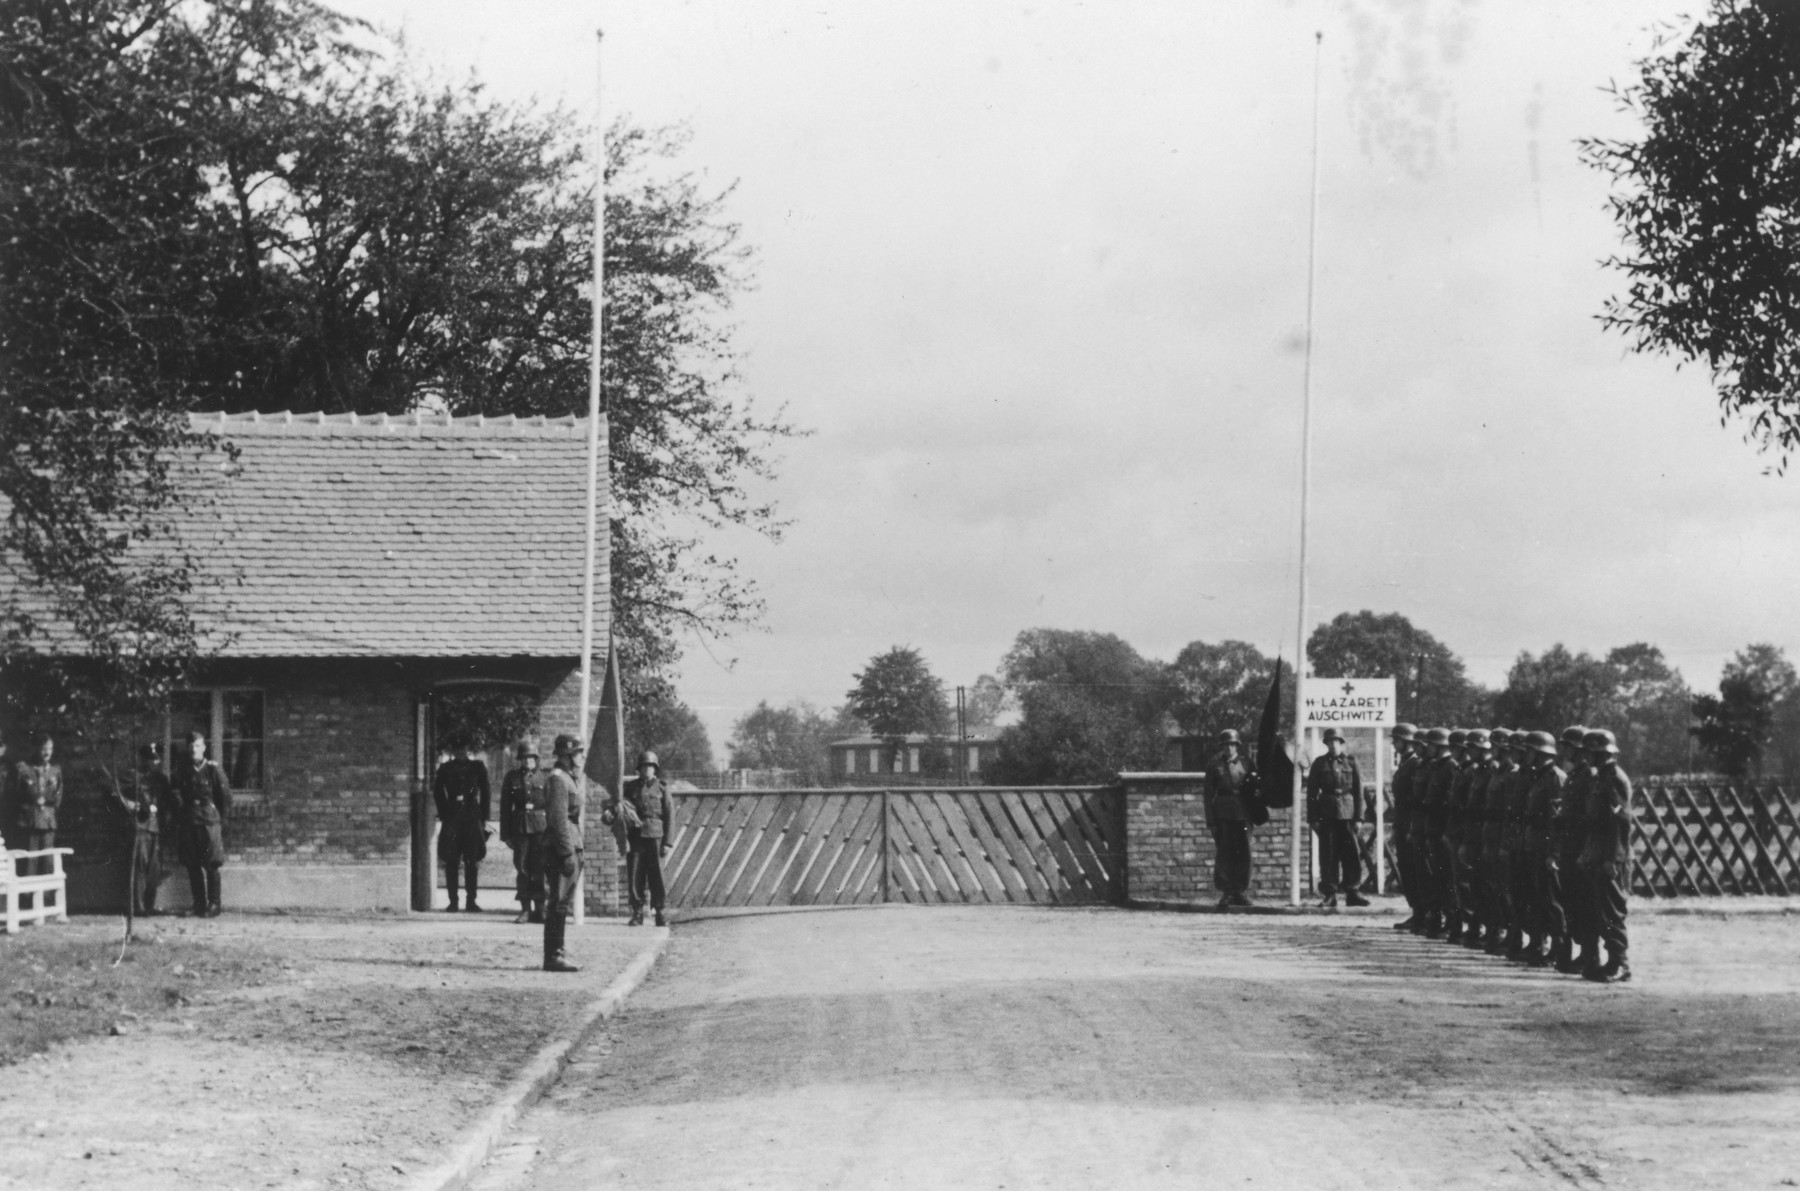 "Nazi troops stand at attention during the dedication of the new SS hospital in Auschwitz.    The official caption reads ""Einweihung des SS-Lazarettes in Auschwitz"" (Dedication of the SS Hospital in Auschwitz).  Pictured is the entrance to the SS hospital with gate, gate house and flag posts."